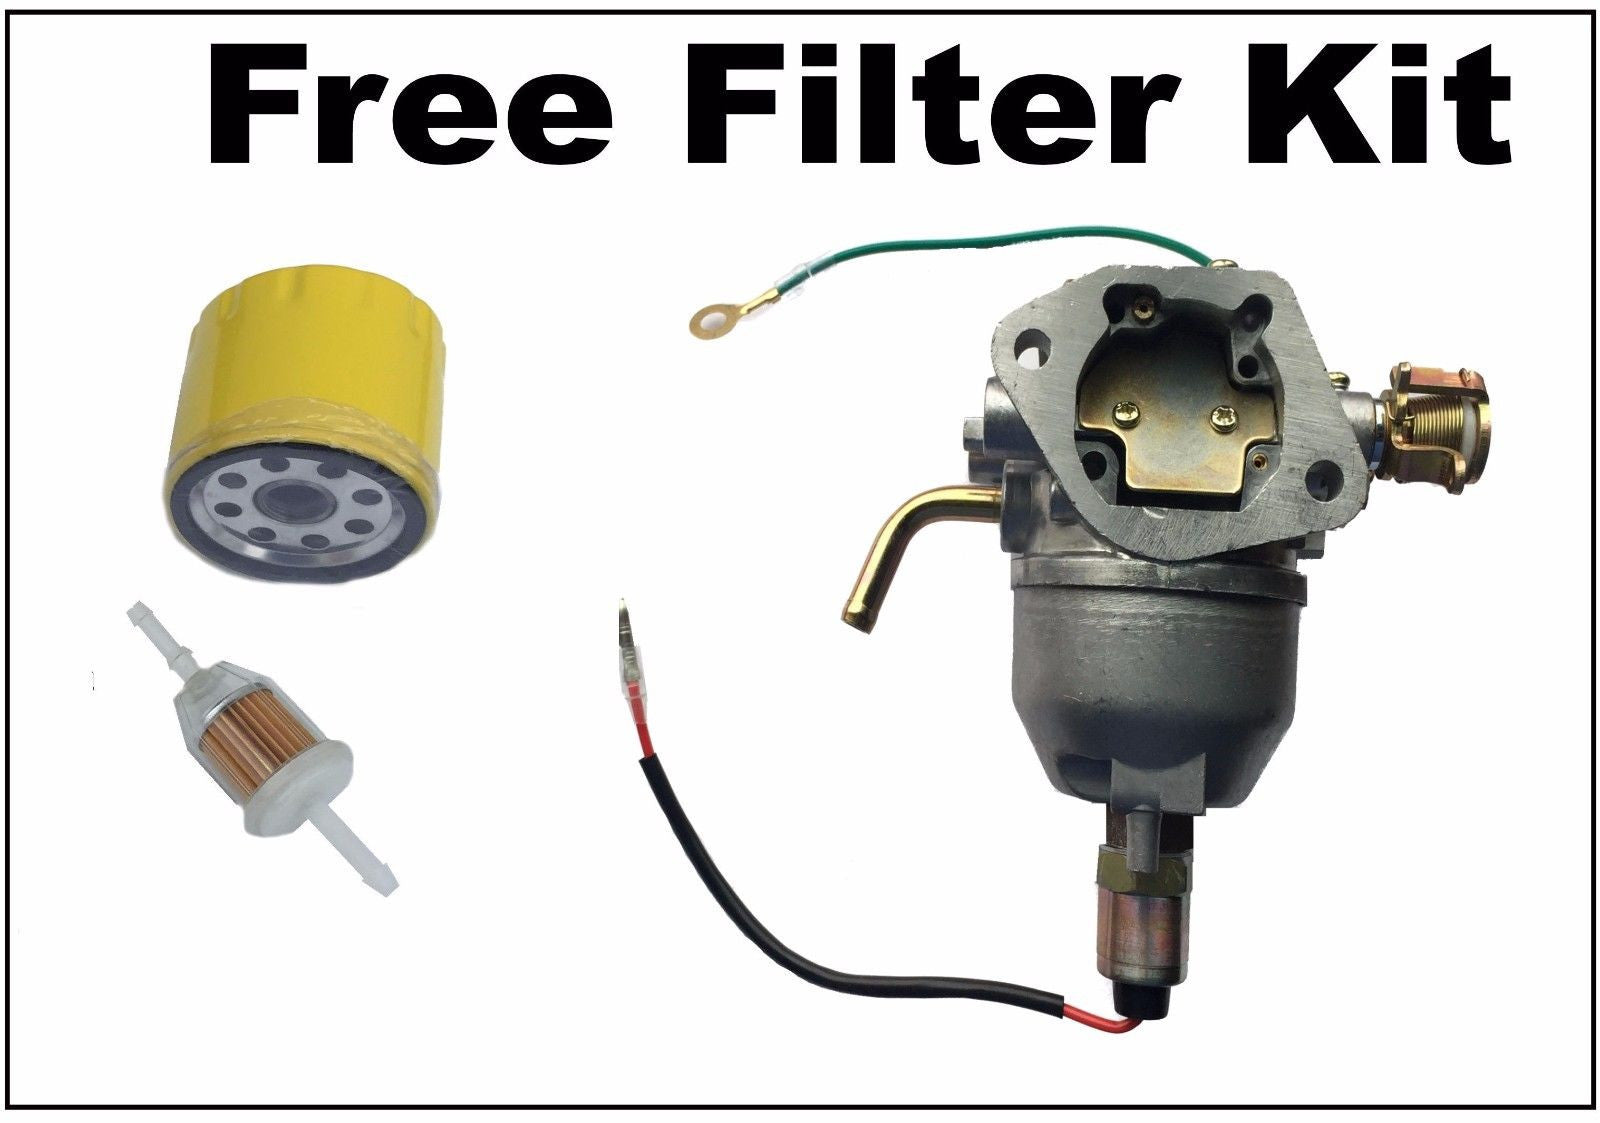 Carburetor Fits Kohler CV16 - CV26 With Free Filter Kit - AE-Power